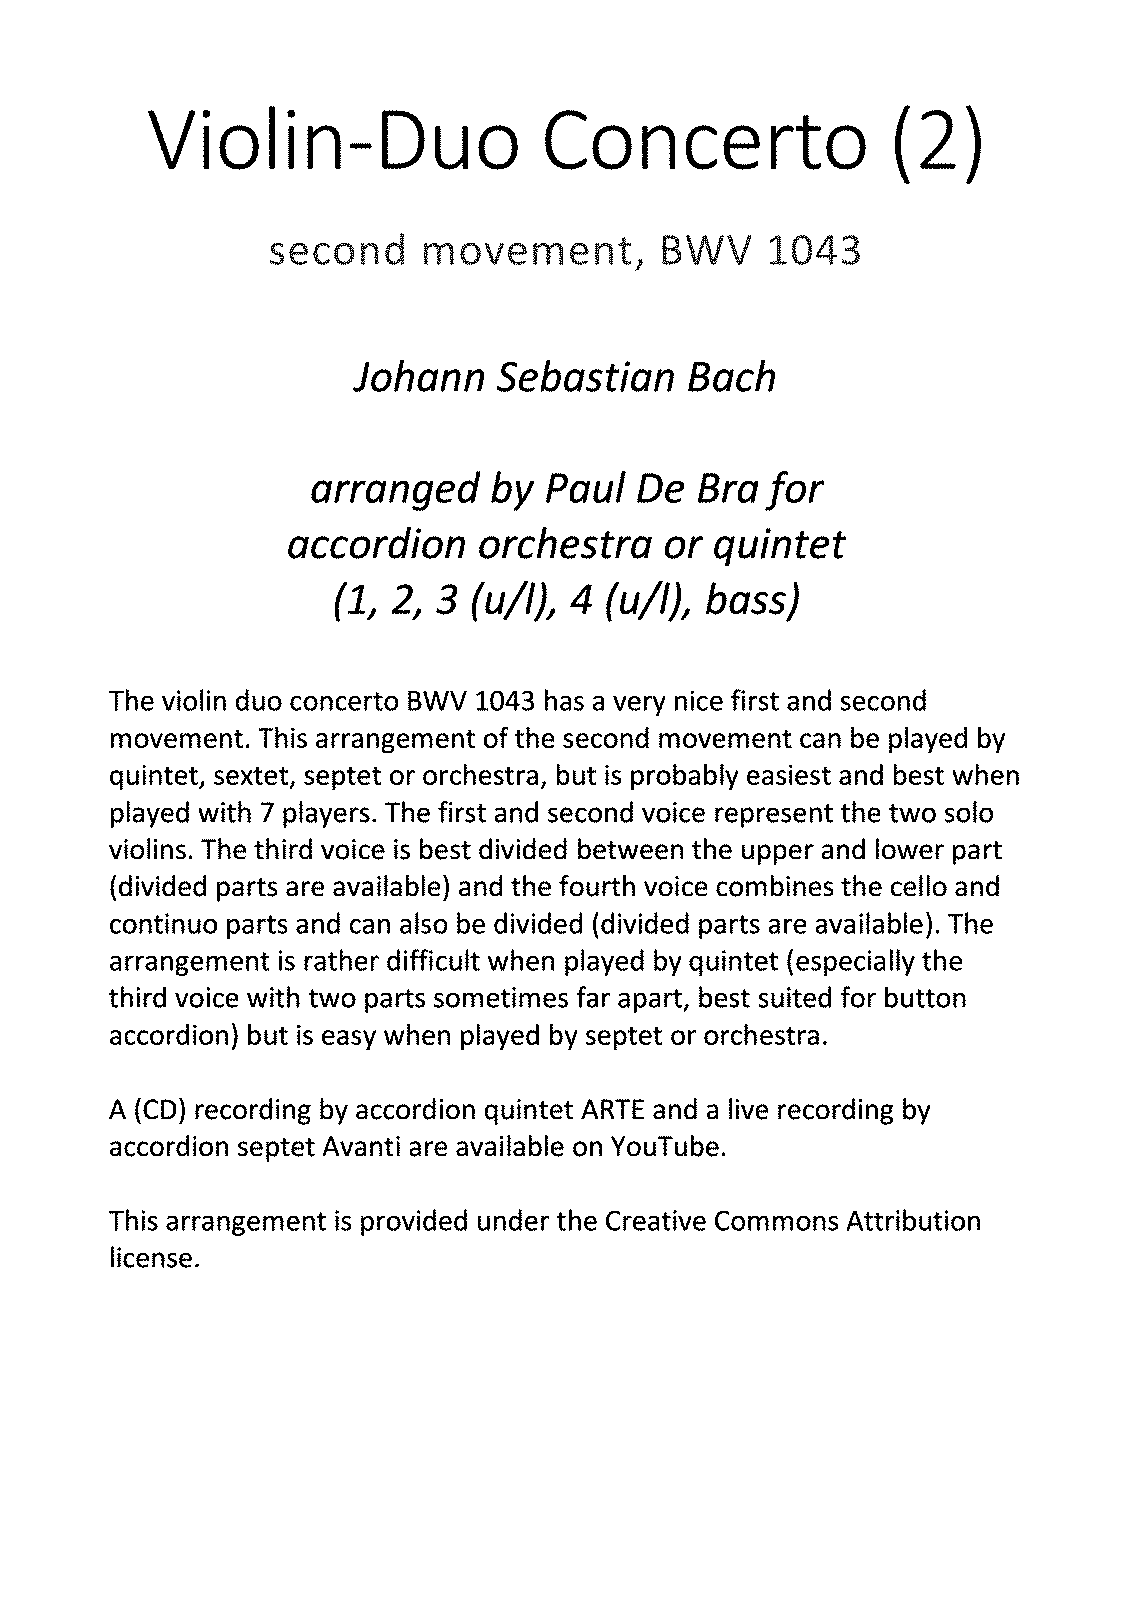 PMLP91906-BWV-1043-2-accordion-orchestra-score.pdf